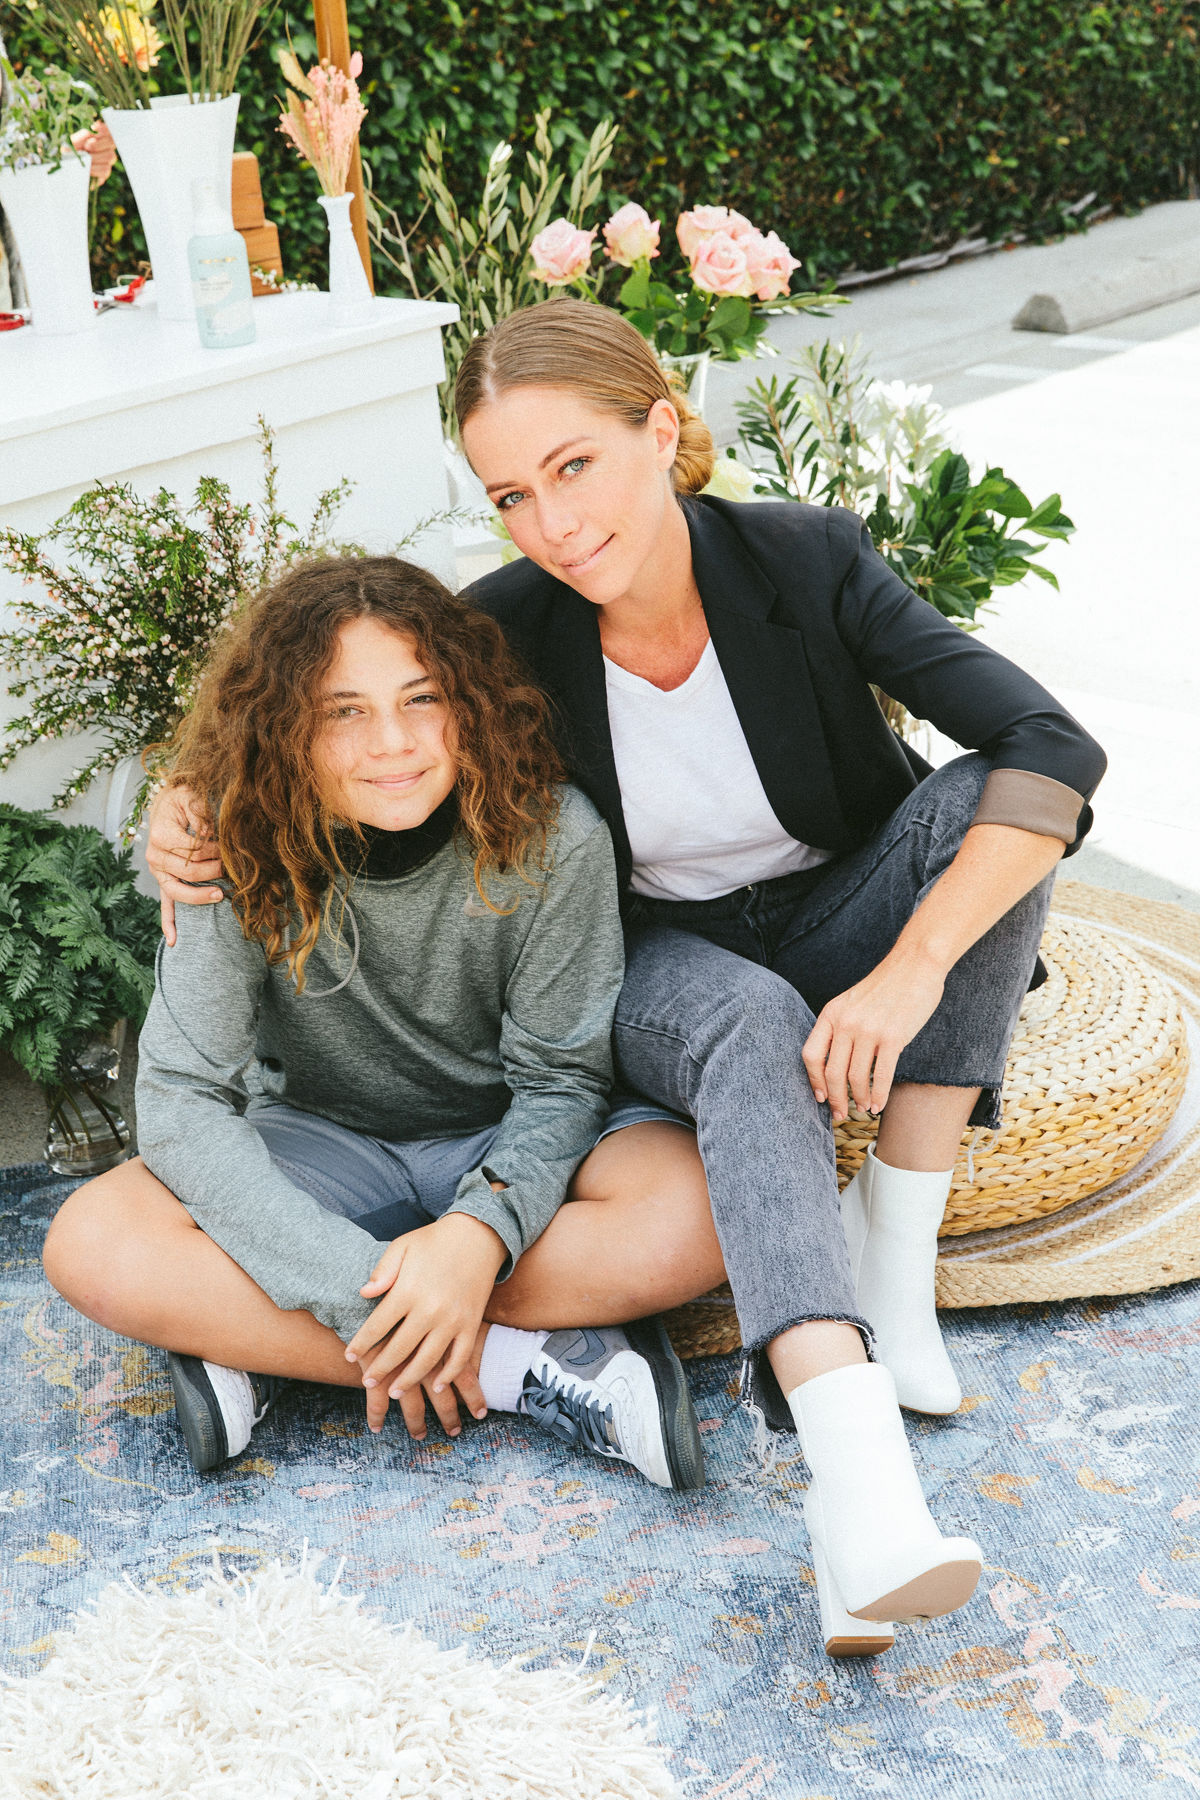 Have You Checked Out Evereden's New Kids Multi-Vitamin Skincare? Evereden Brings Together Celebrity Moms & Kids for the Launch of NEW Kids Skincare Line at Event in Culver City